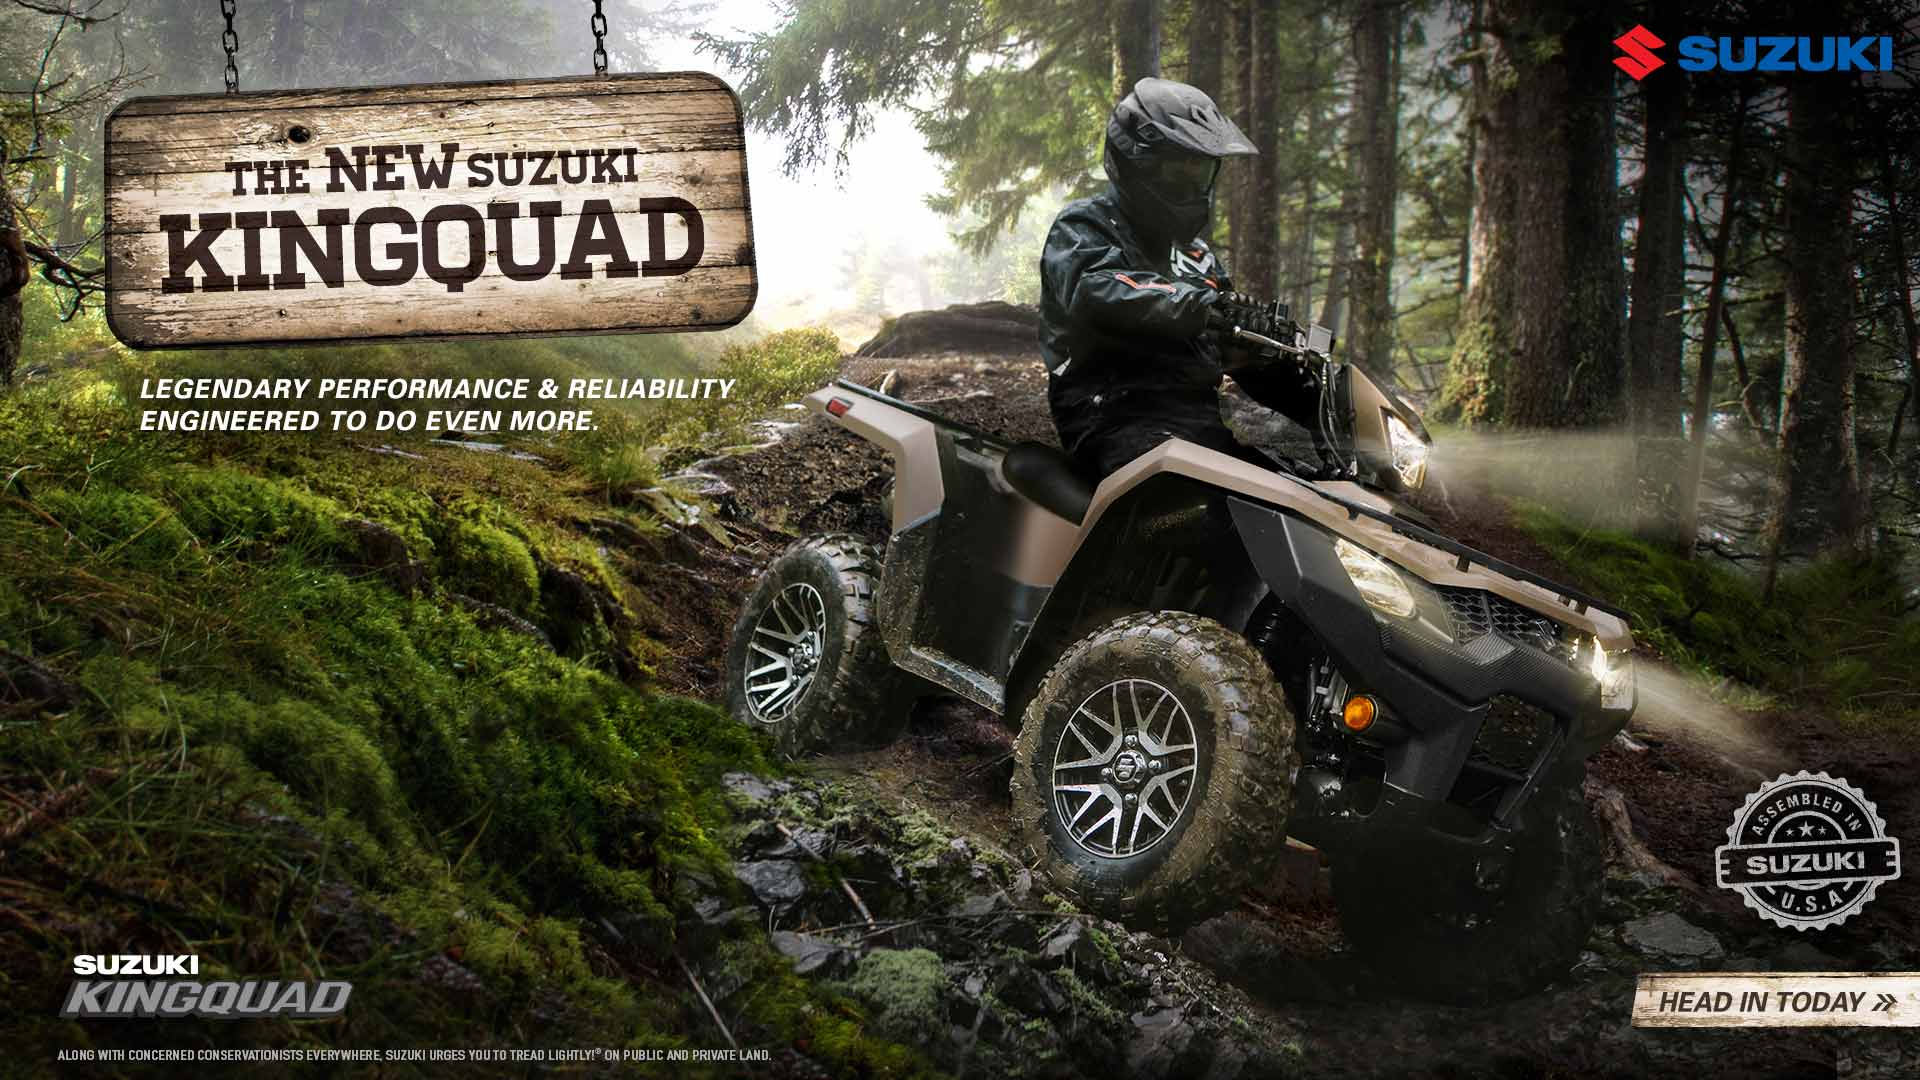 SUZ-946_KingQuad_2019_Trail_WB_1920x1080_F